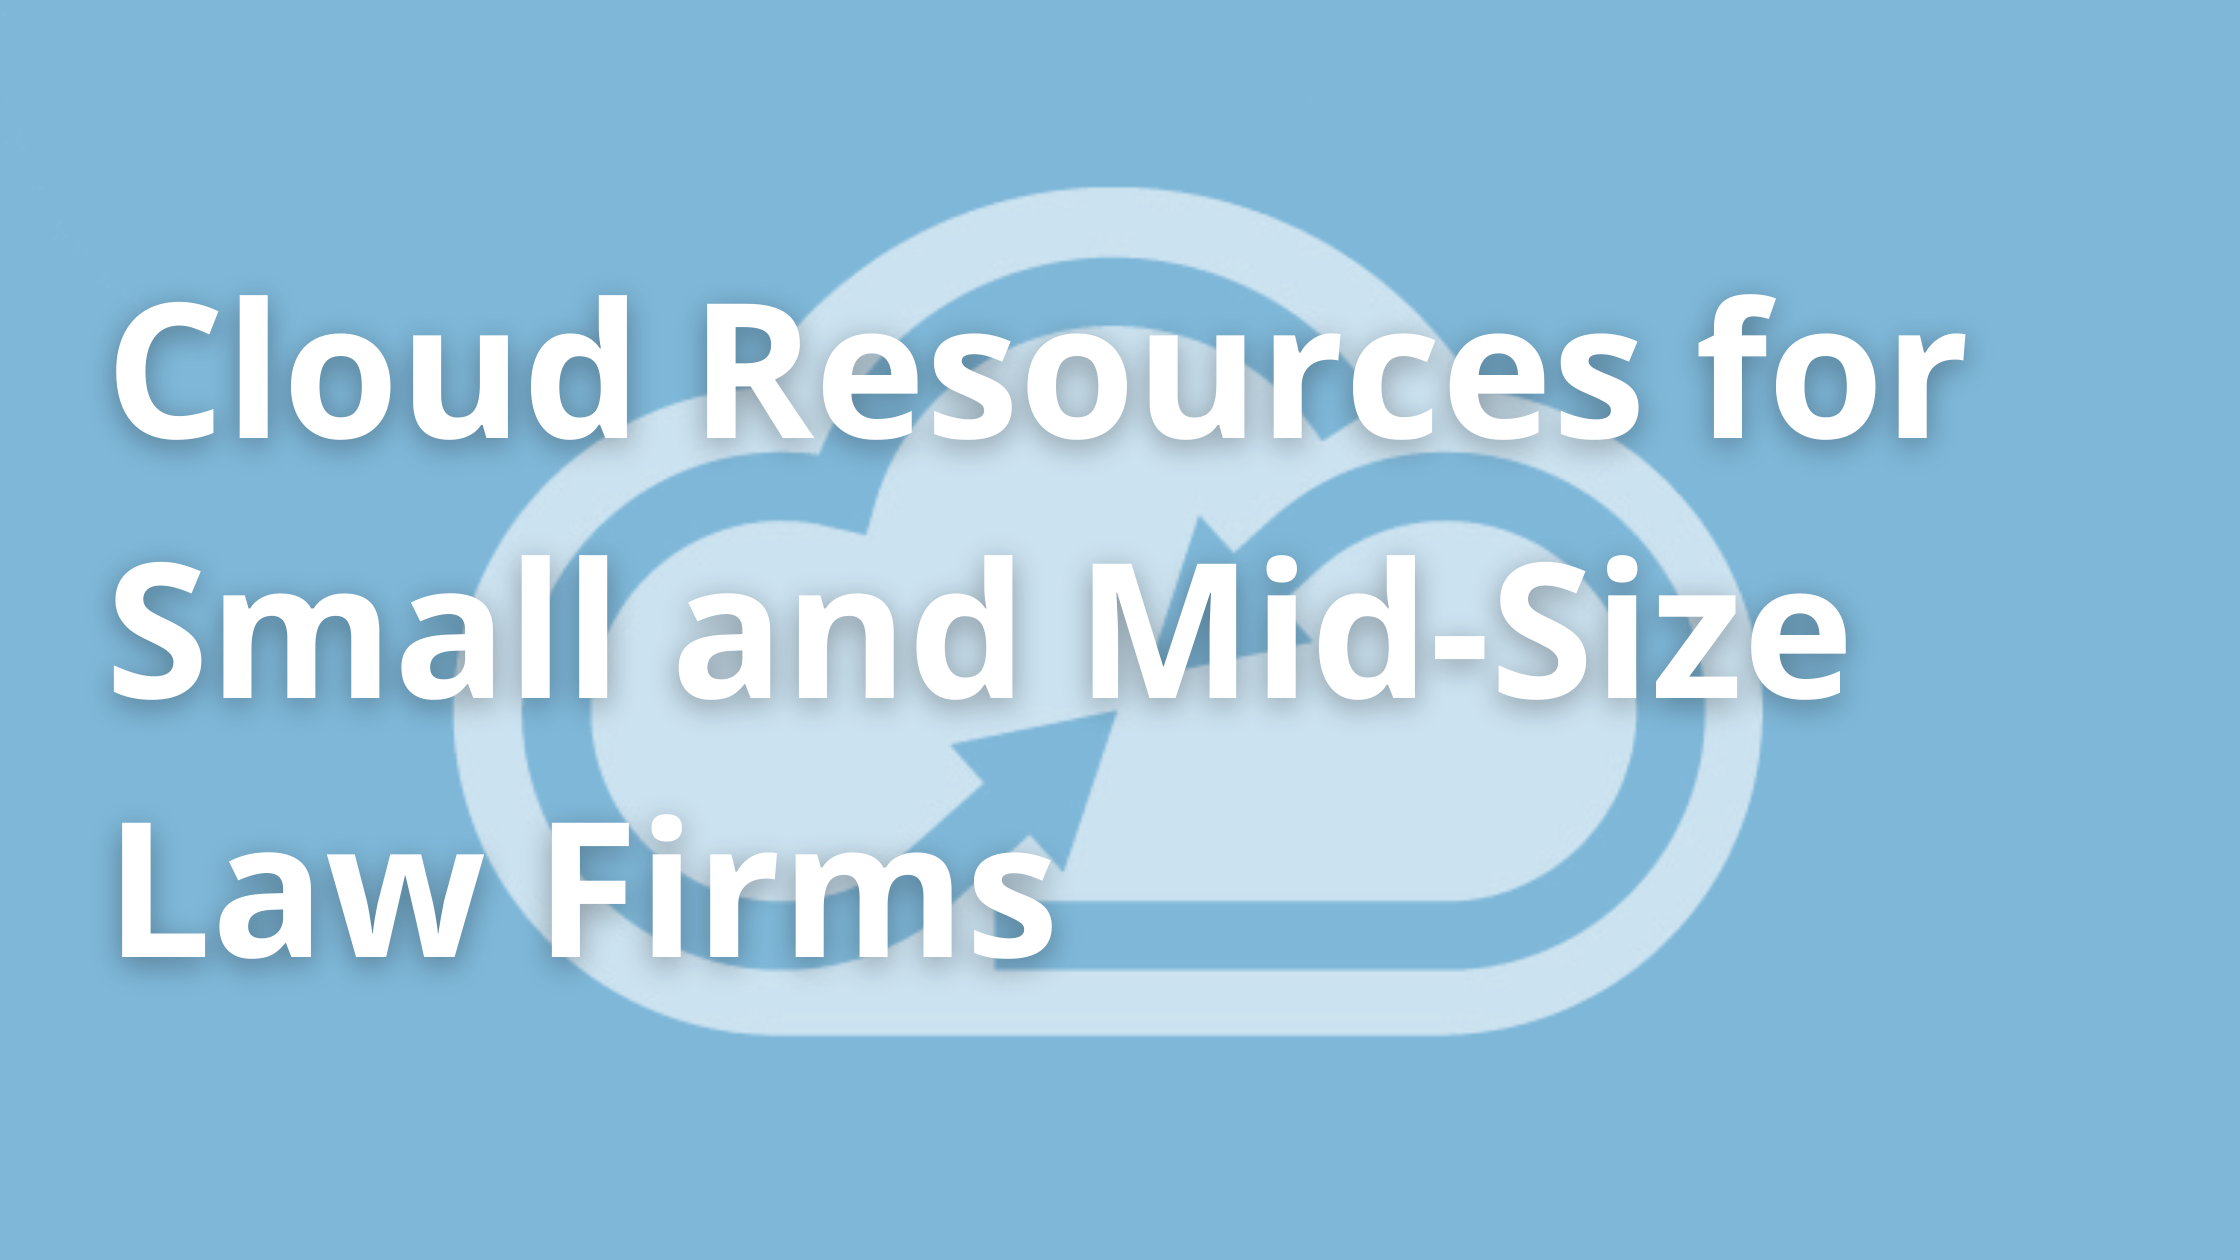 Cloud Resources for Small and Mid-Size Law Firms